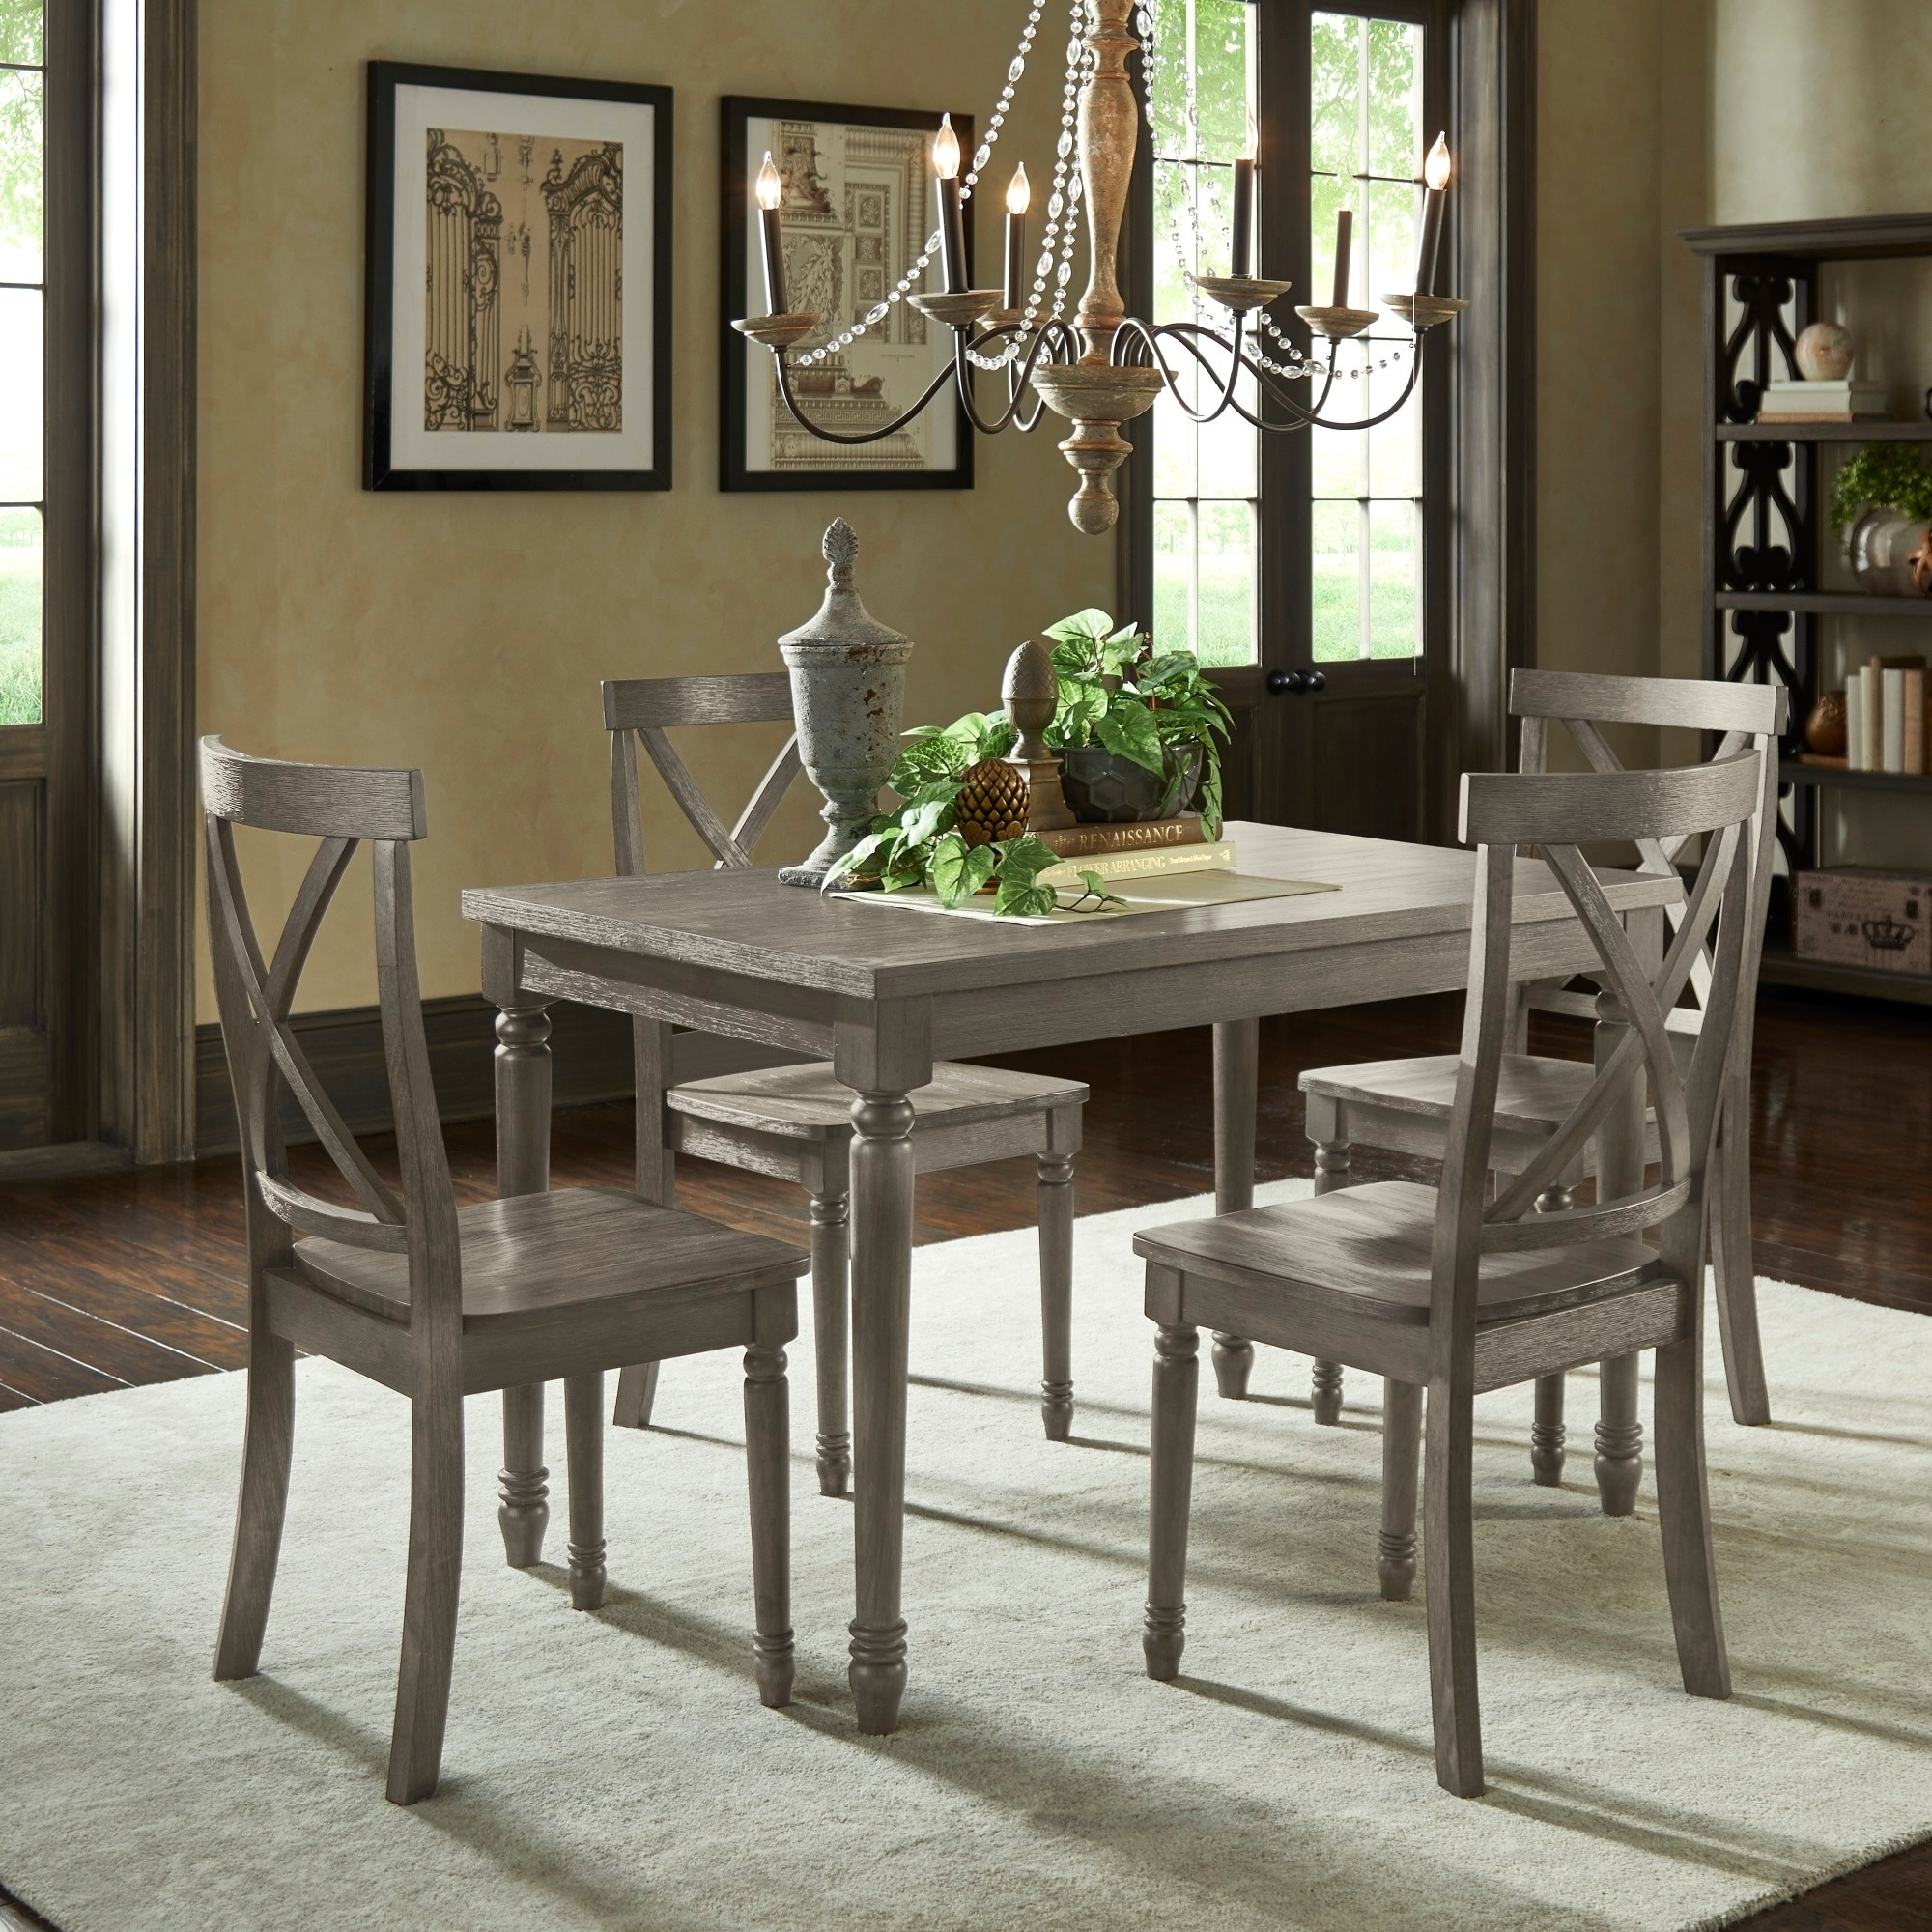 Dahlia Reclaimed Wood Grey Finish 5 Piece 48 Inch Dining Table Set By Inspire Q